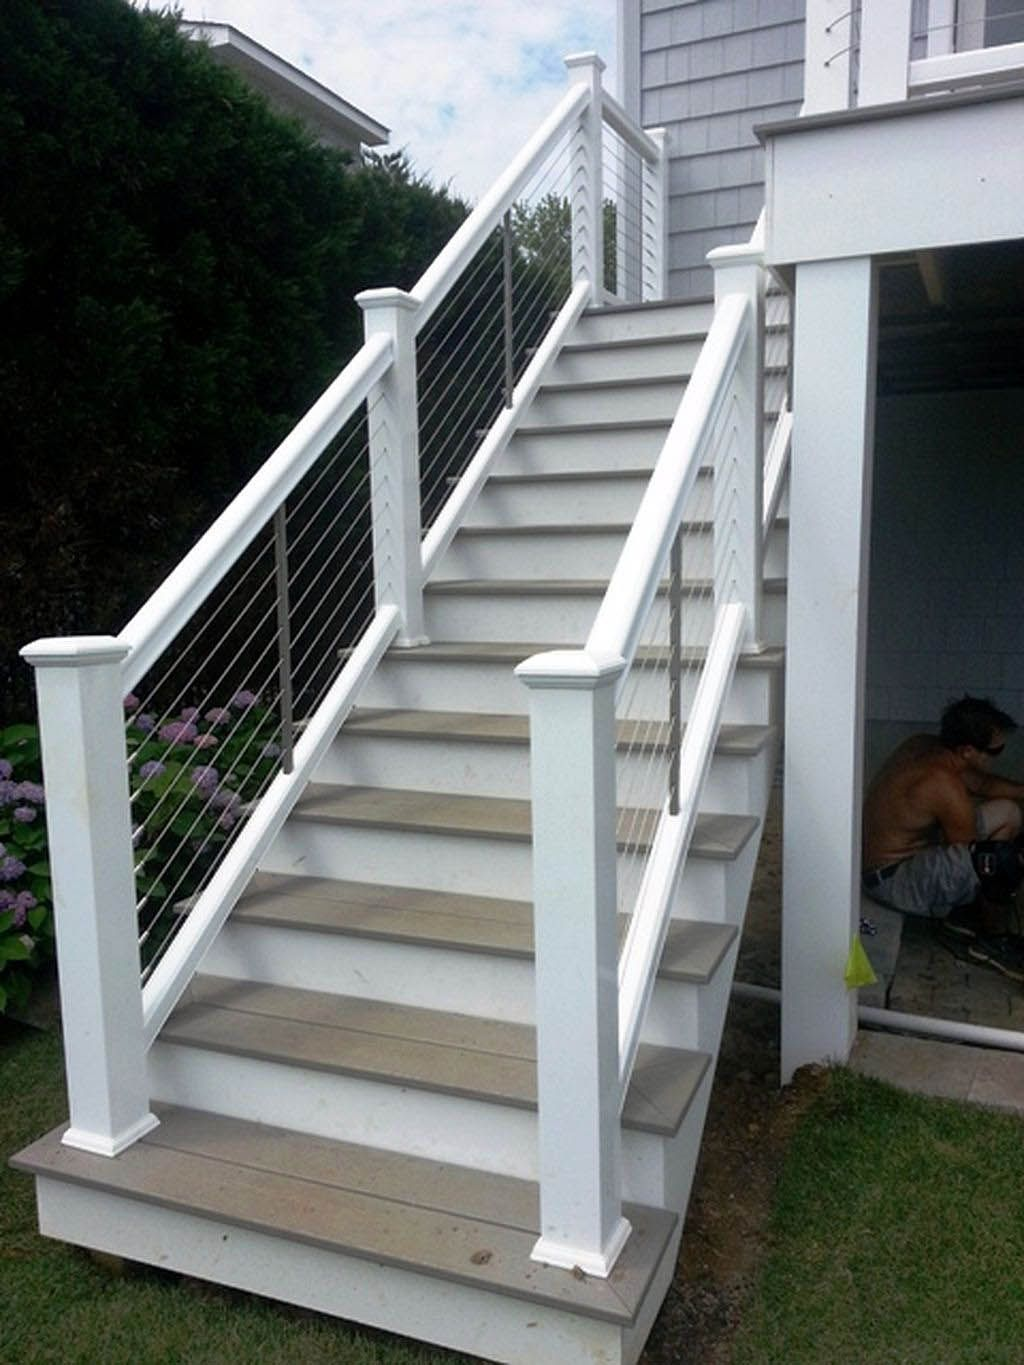 Exterior Stair Railing Ideas That You Can Build Yourself | Diy Handrails For Exterior Stairs